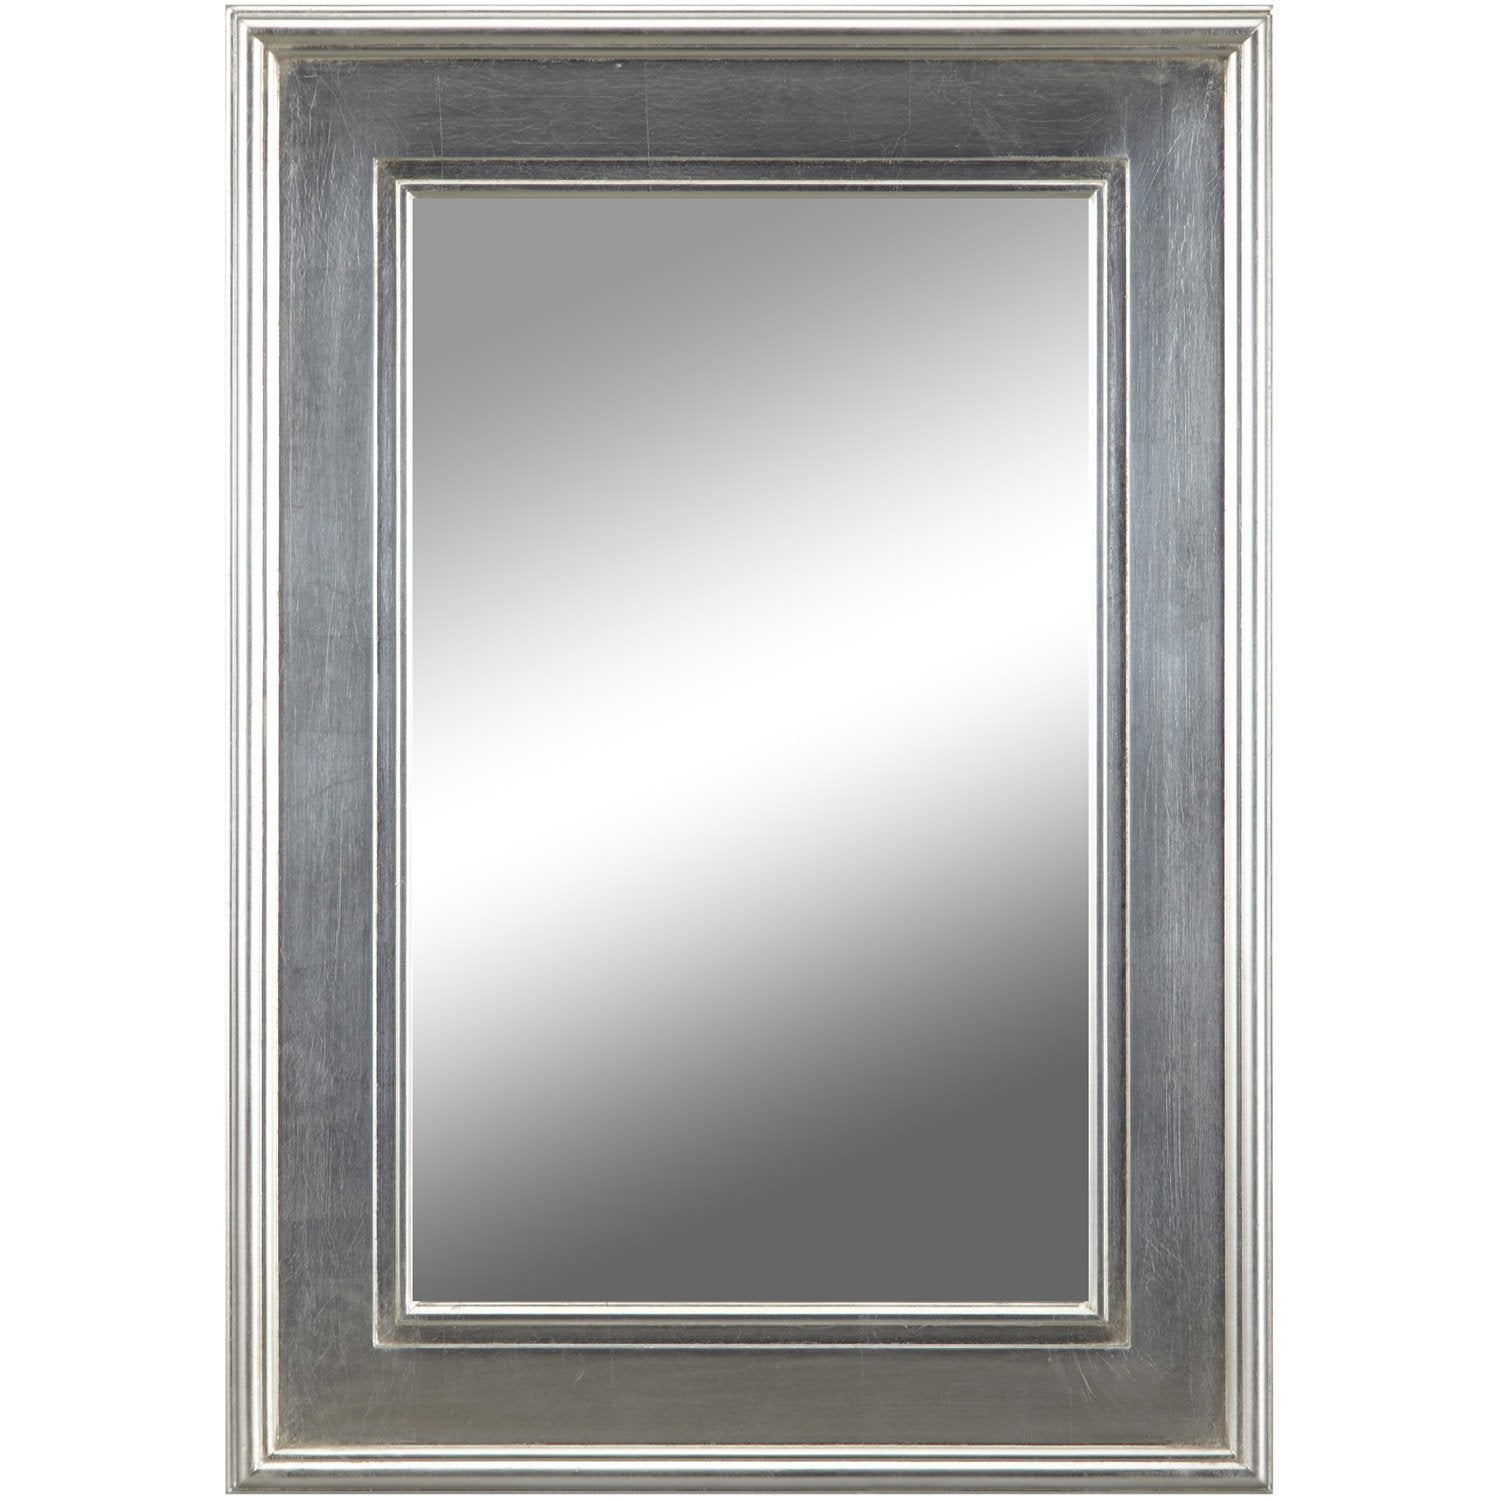 miroir tisbury rectangle argent 50x70 cm leroy merlin